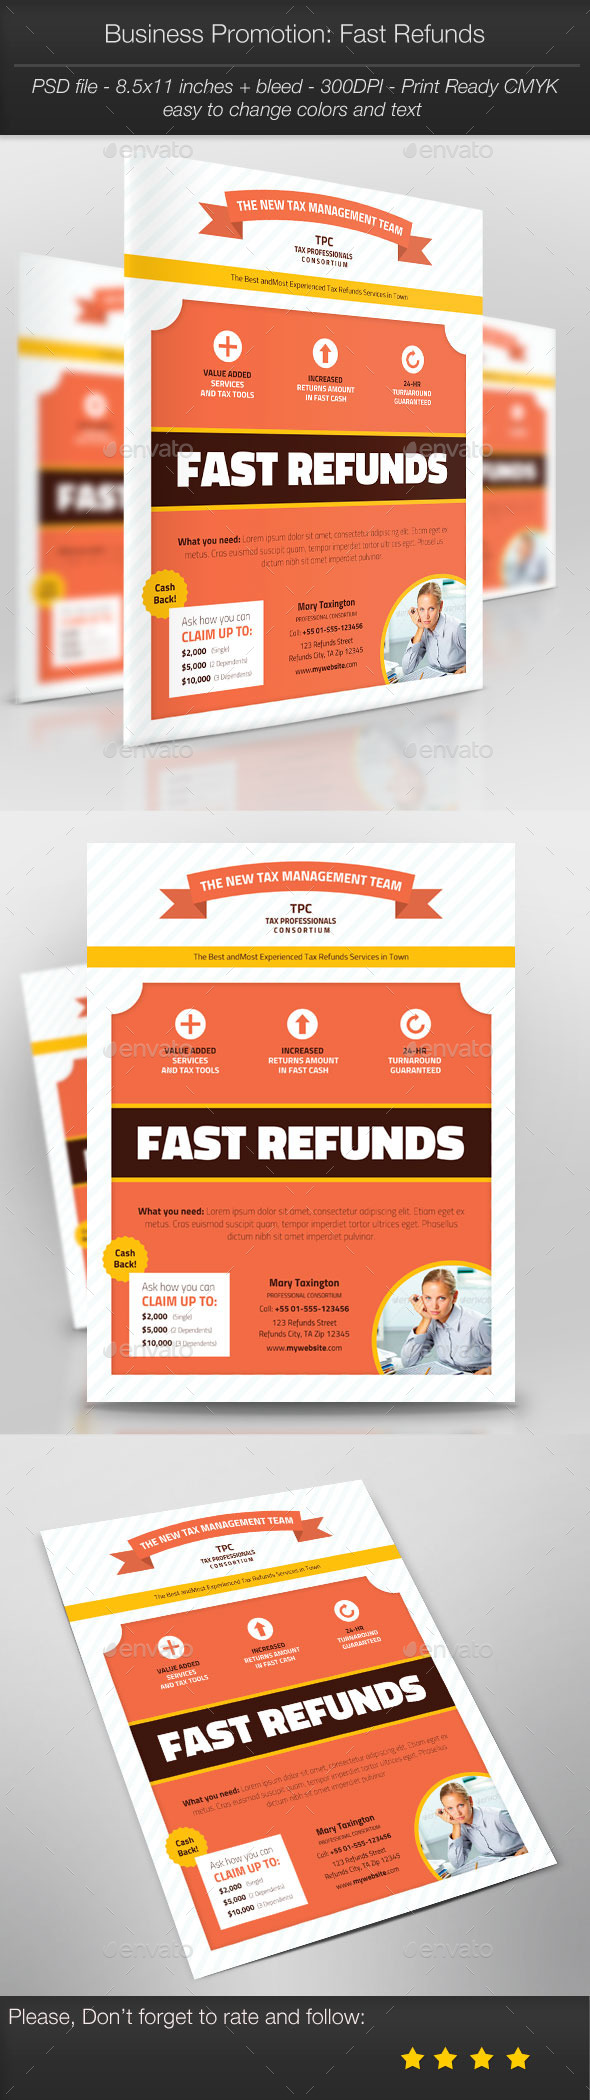 GraphicRiver Business Promotion Fast Refunds 10345640